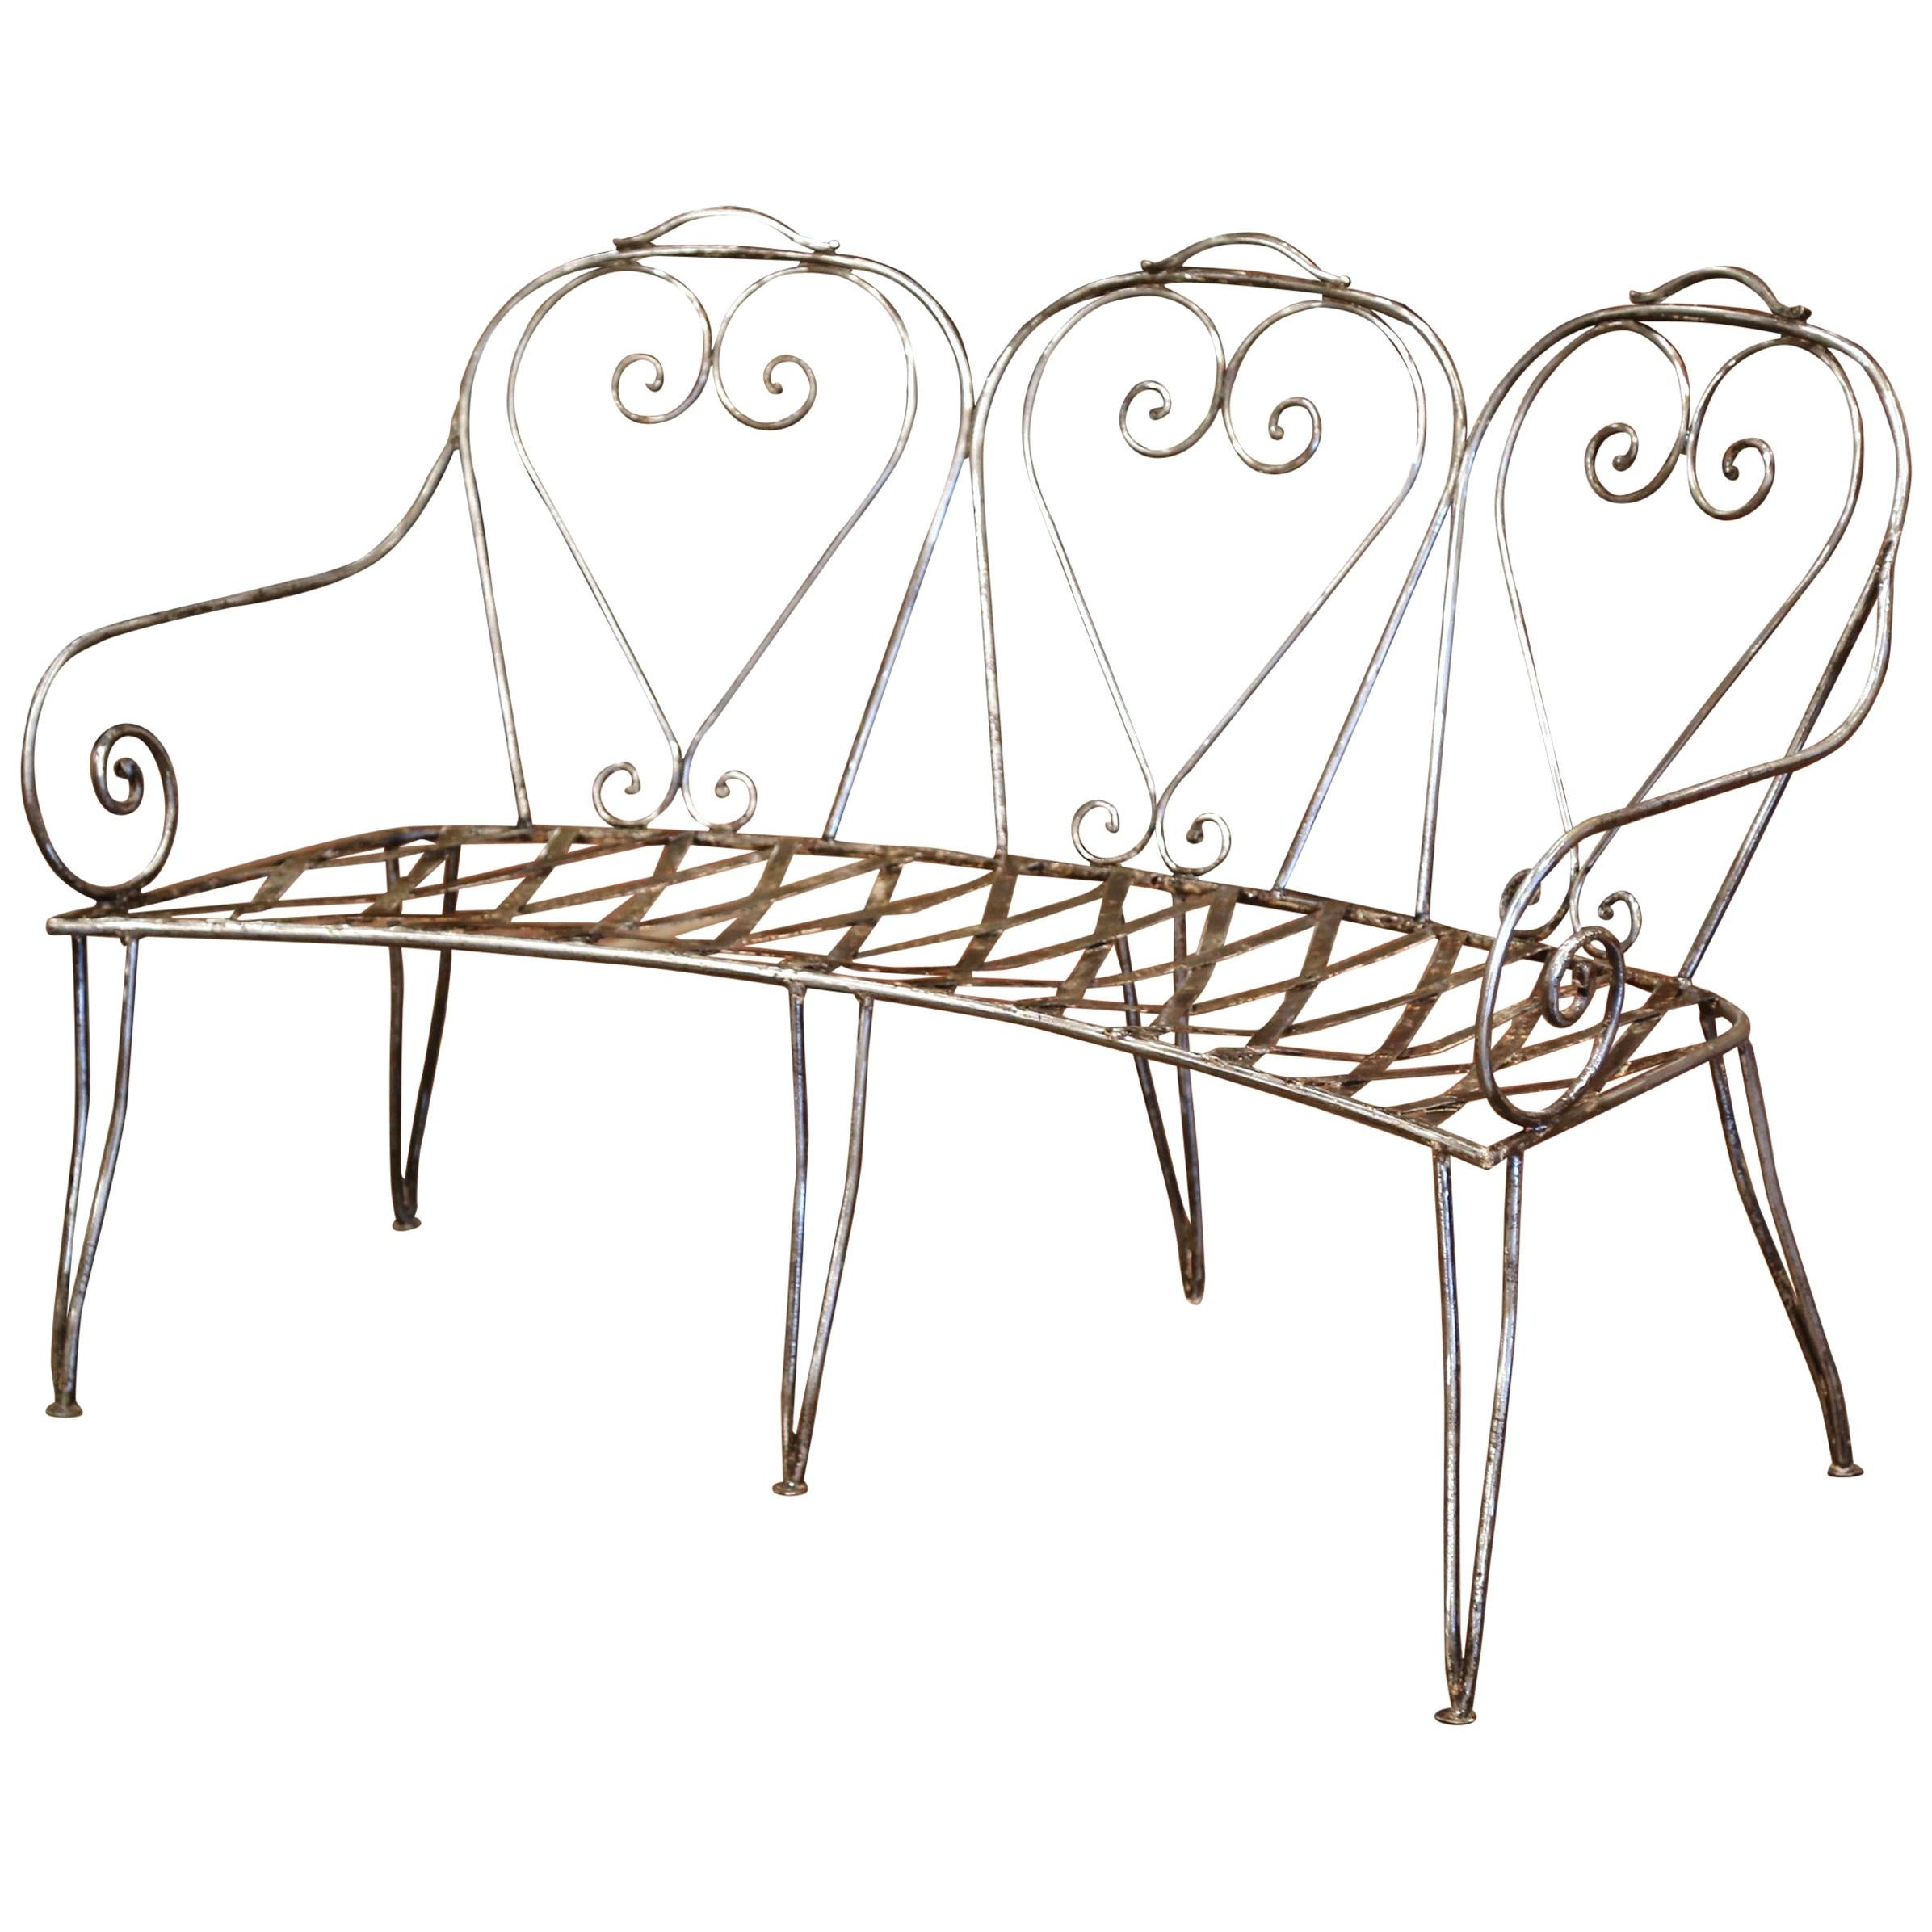 19th Century French Curved Polished Iron Three-Seat Garden Bench from Normandy